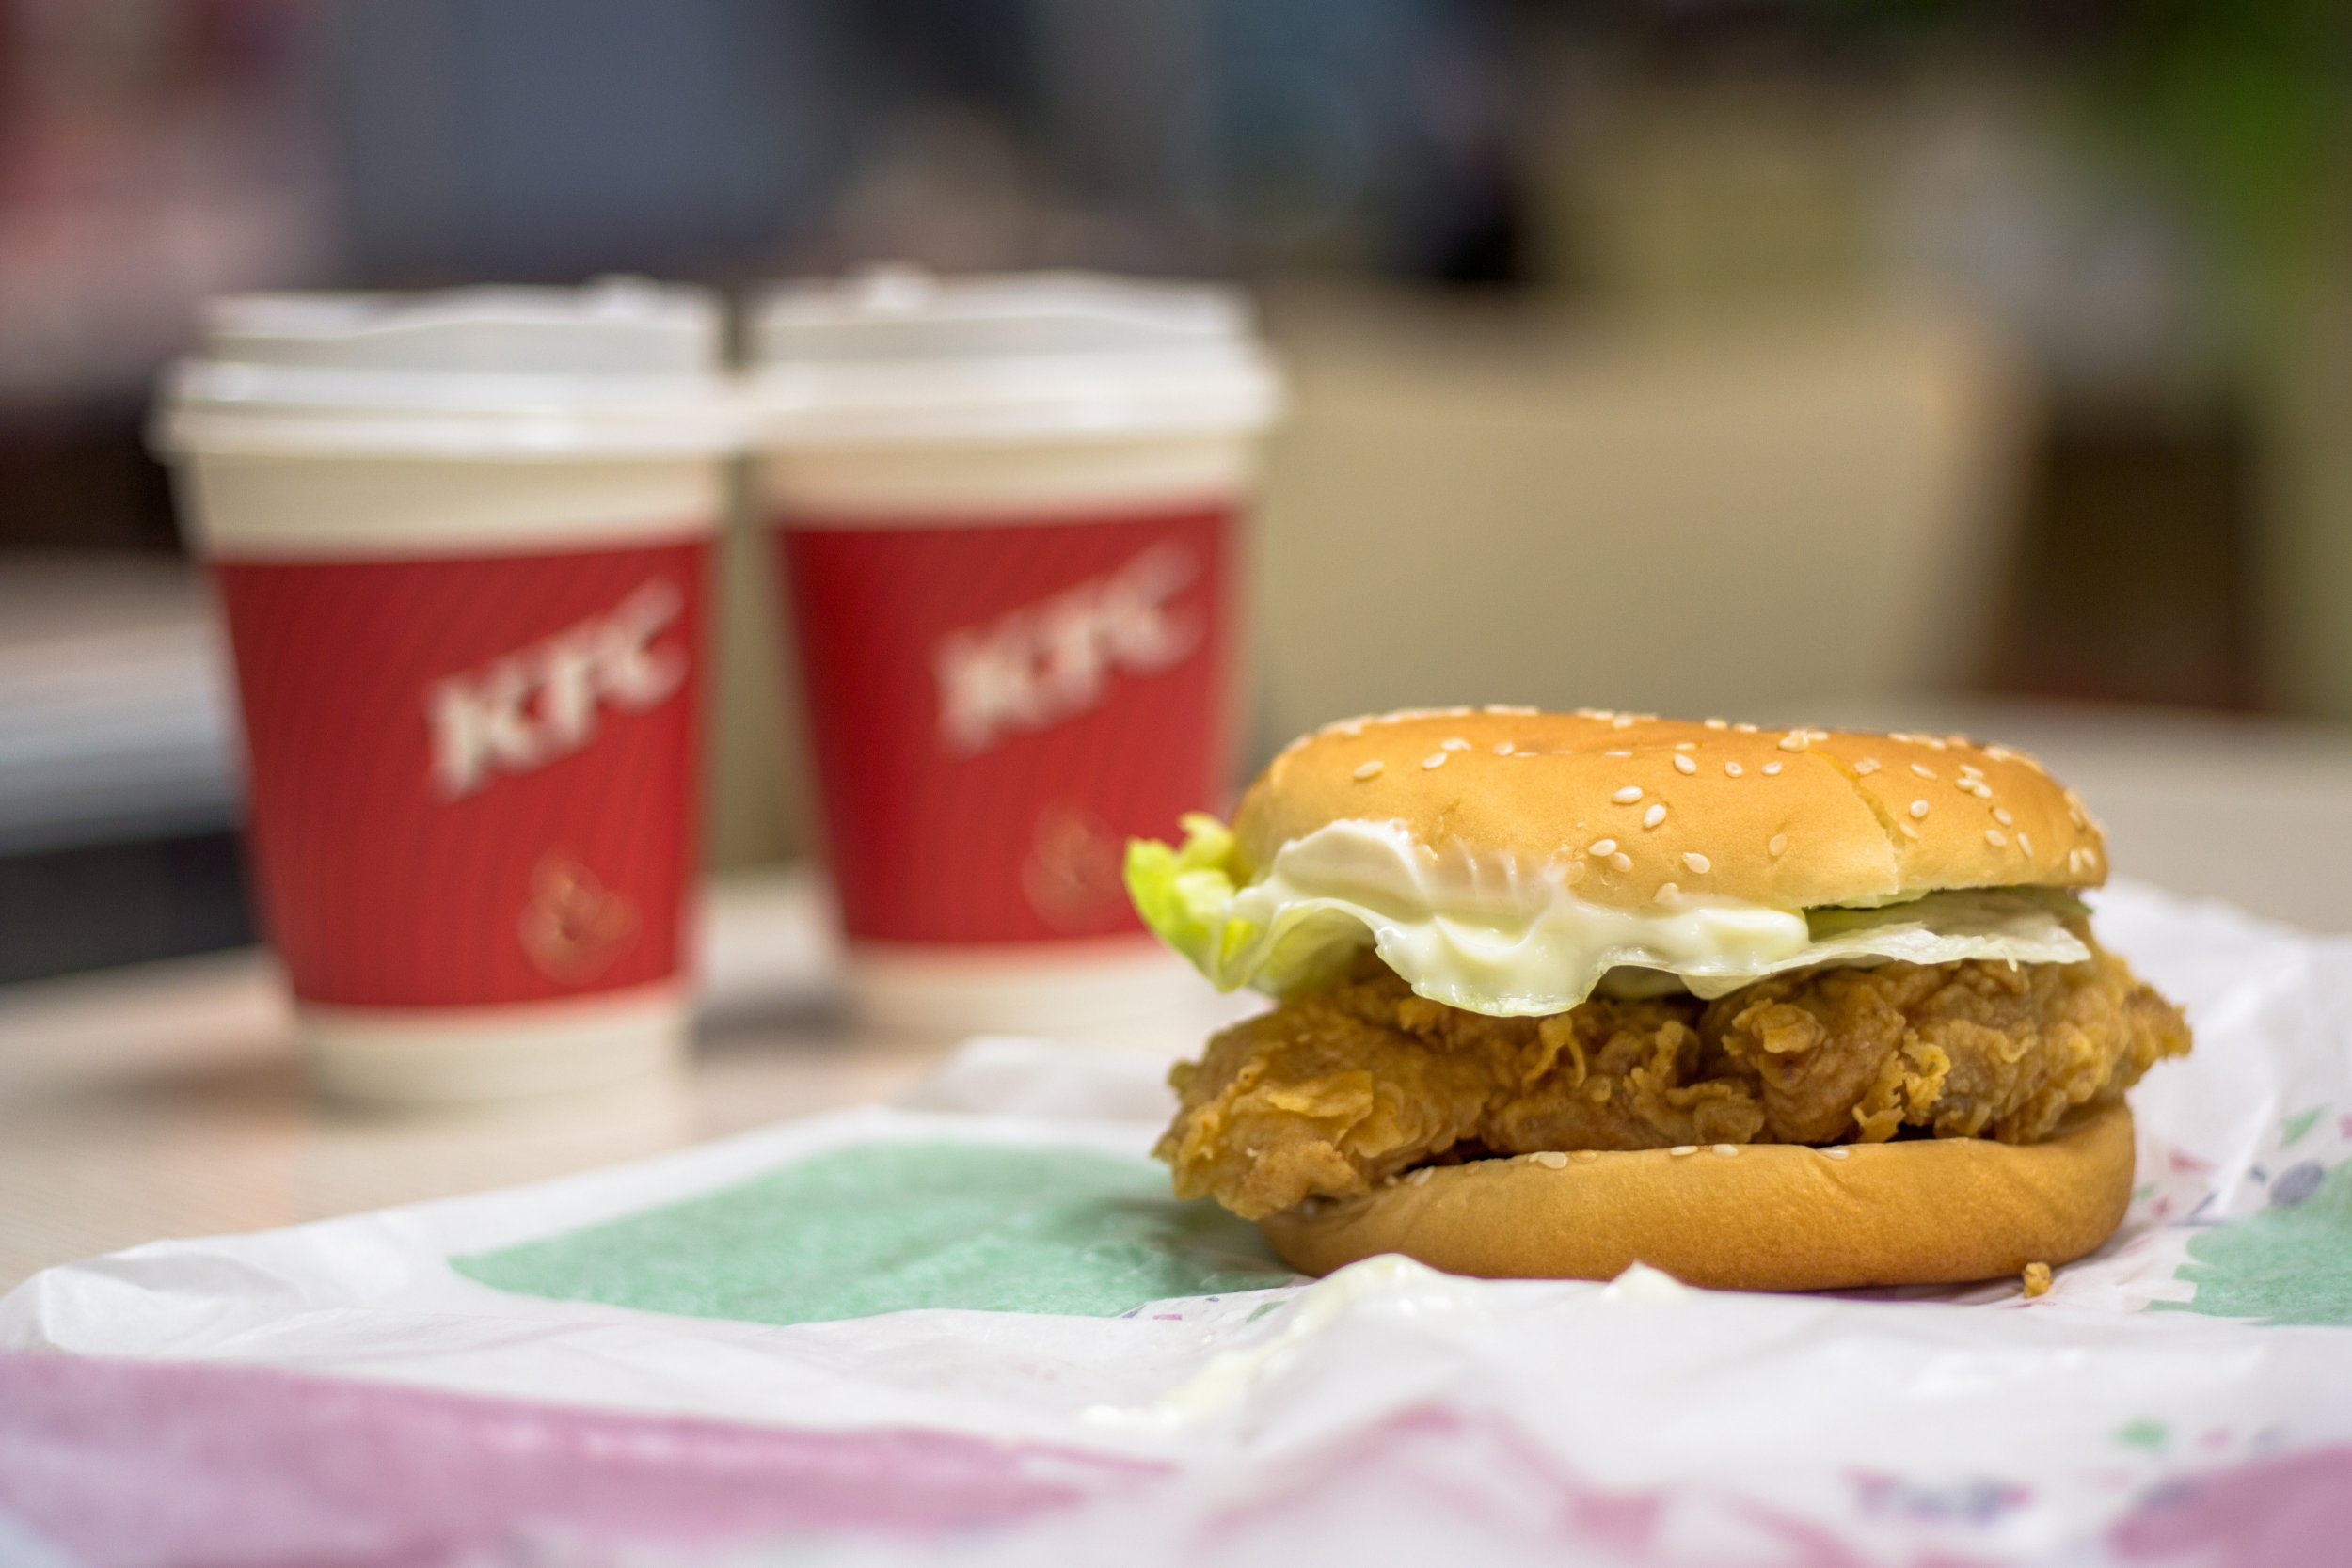 Fried chicken hamburger and freshly ground coffee supplied by KFC